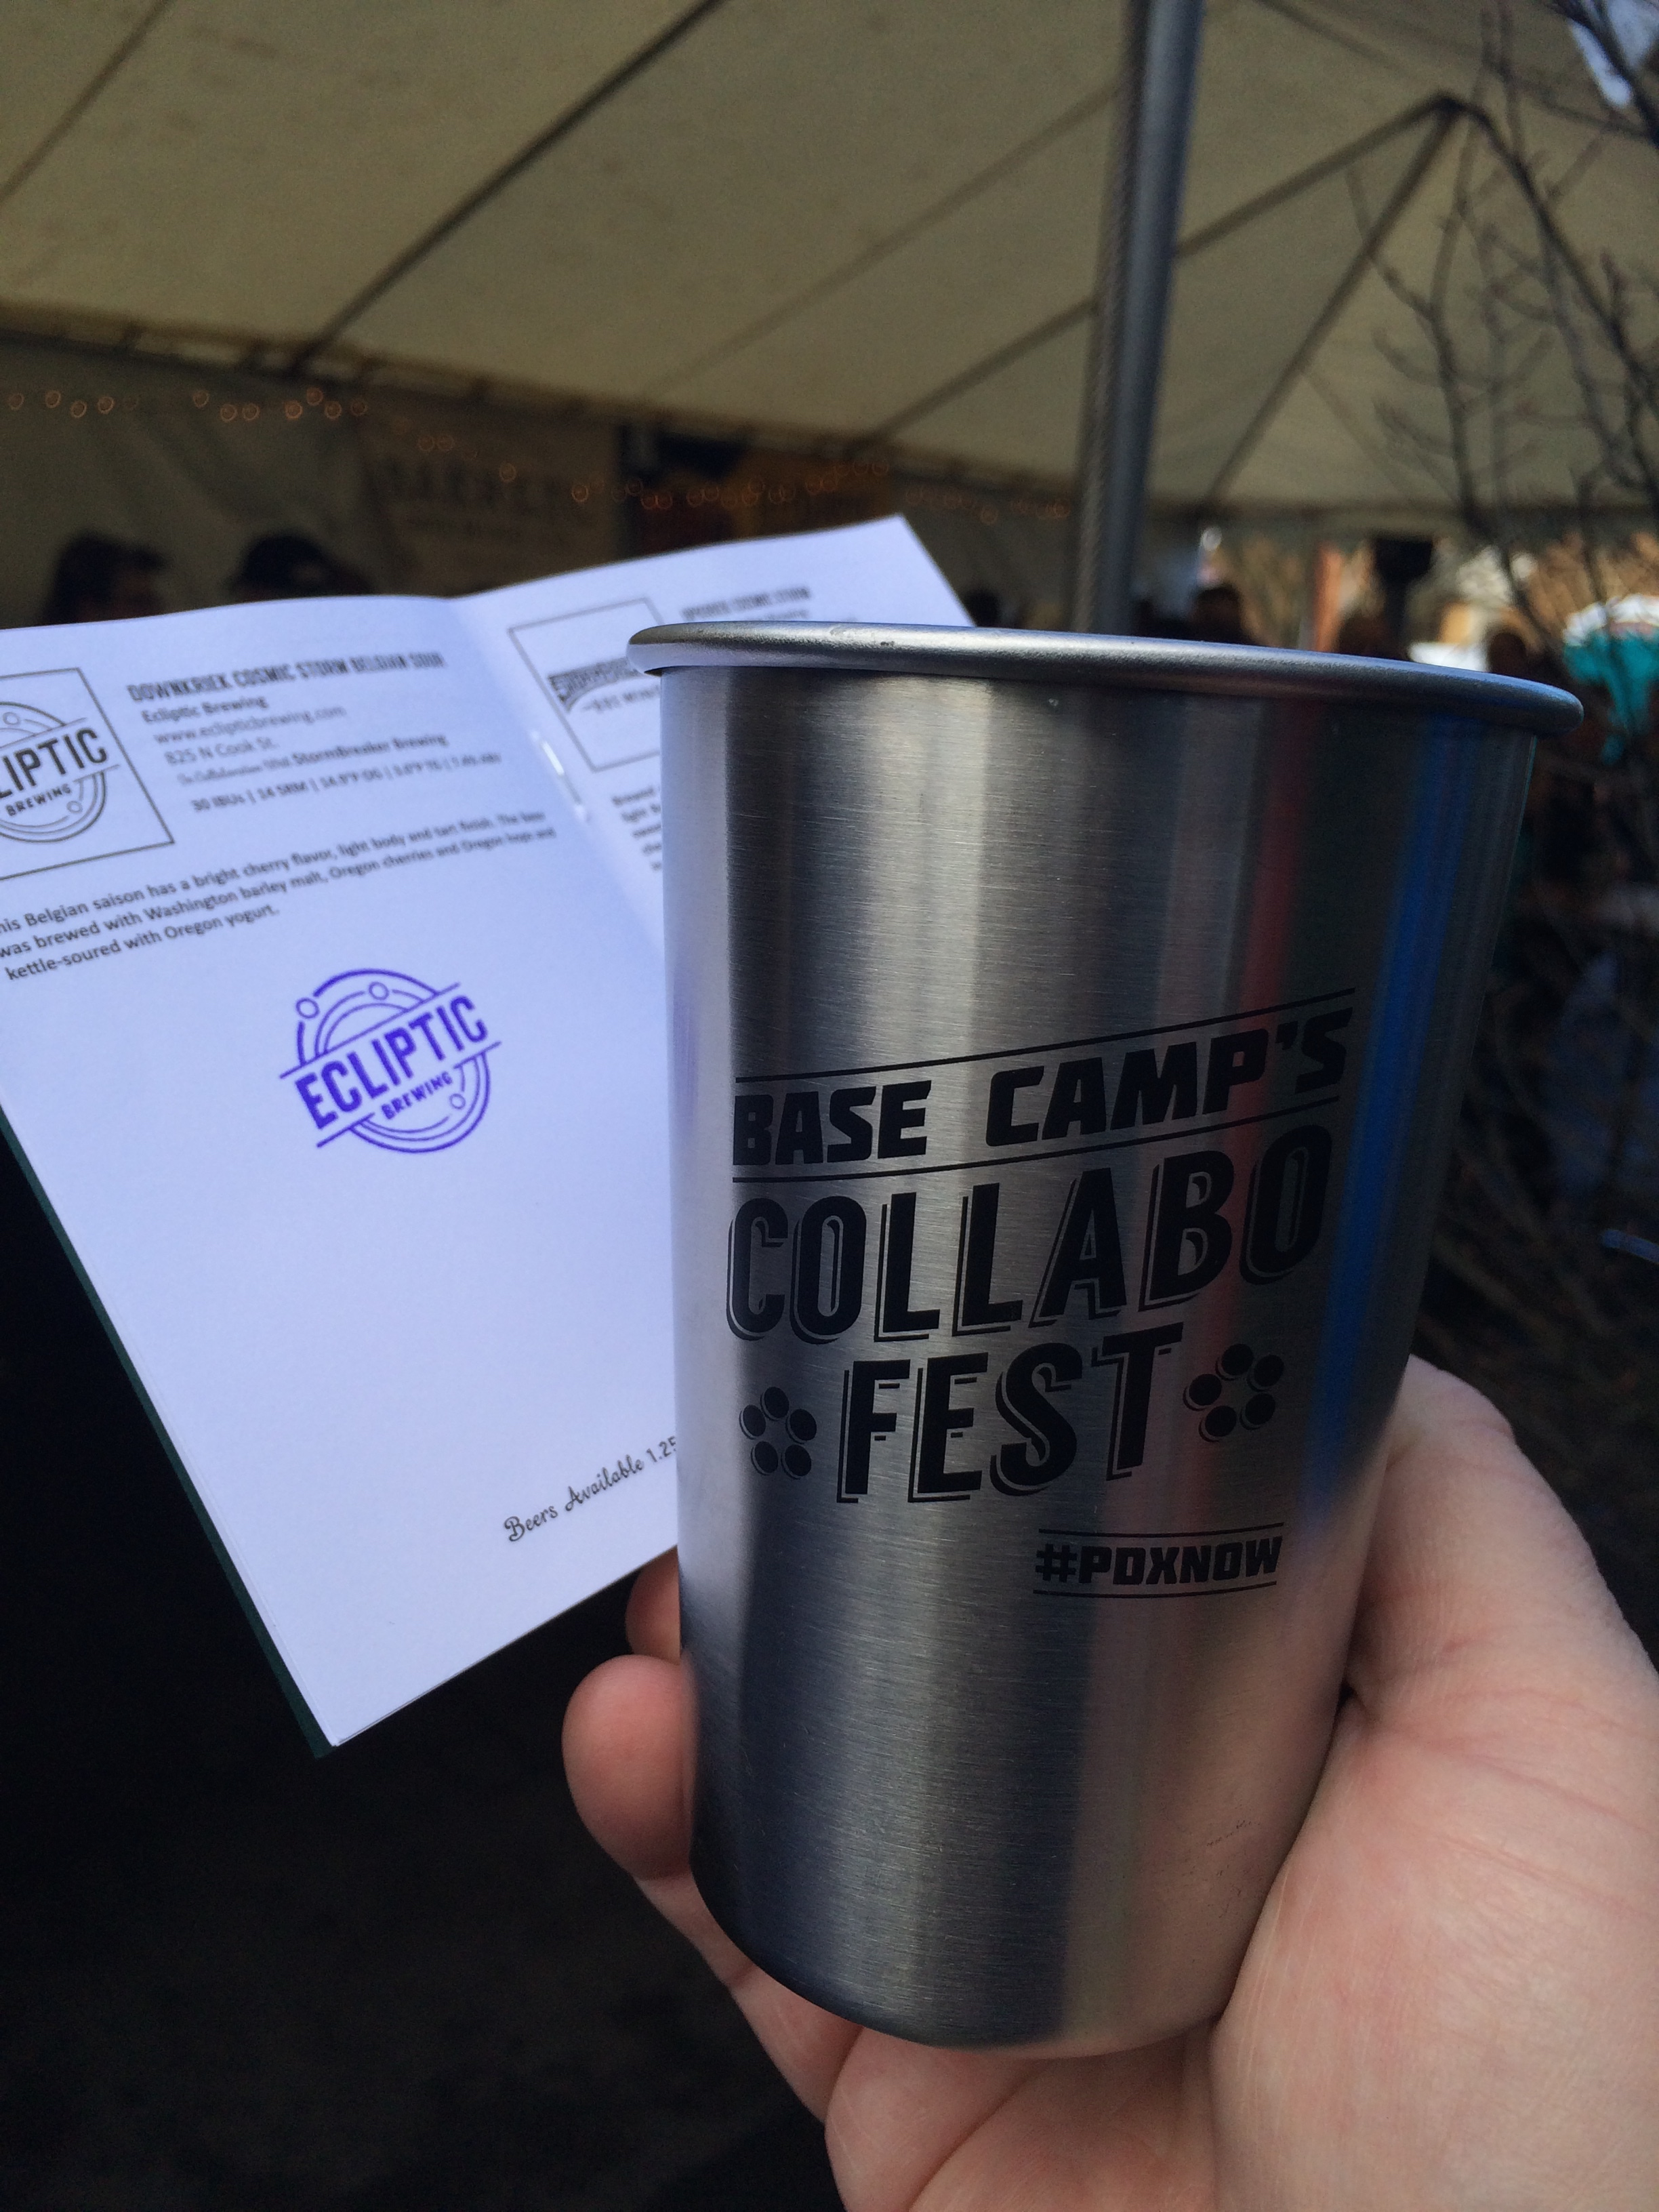 VIP Cup and Passport at 2015 #PDXNOW Base Camp Collabofest